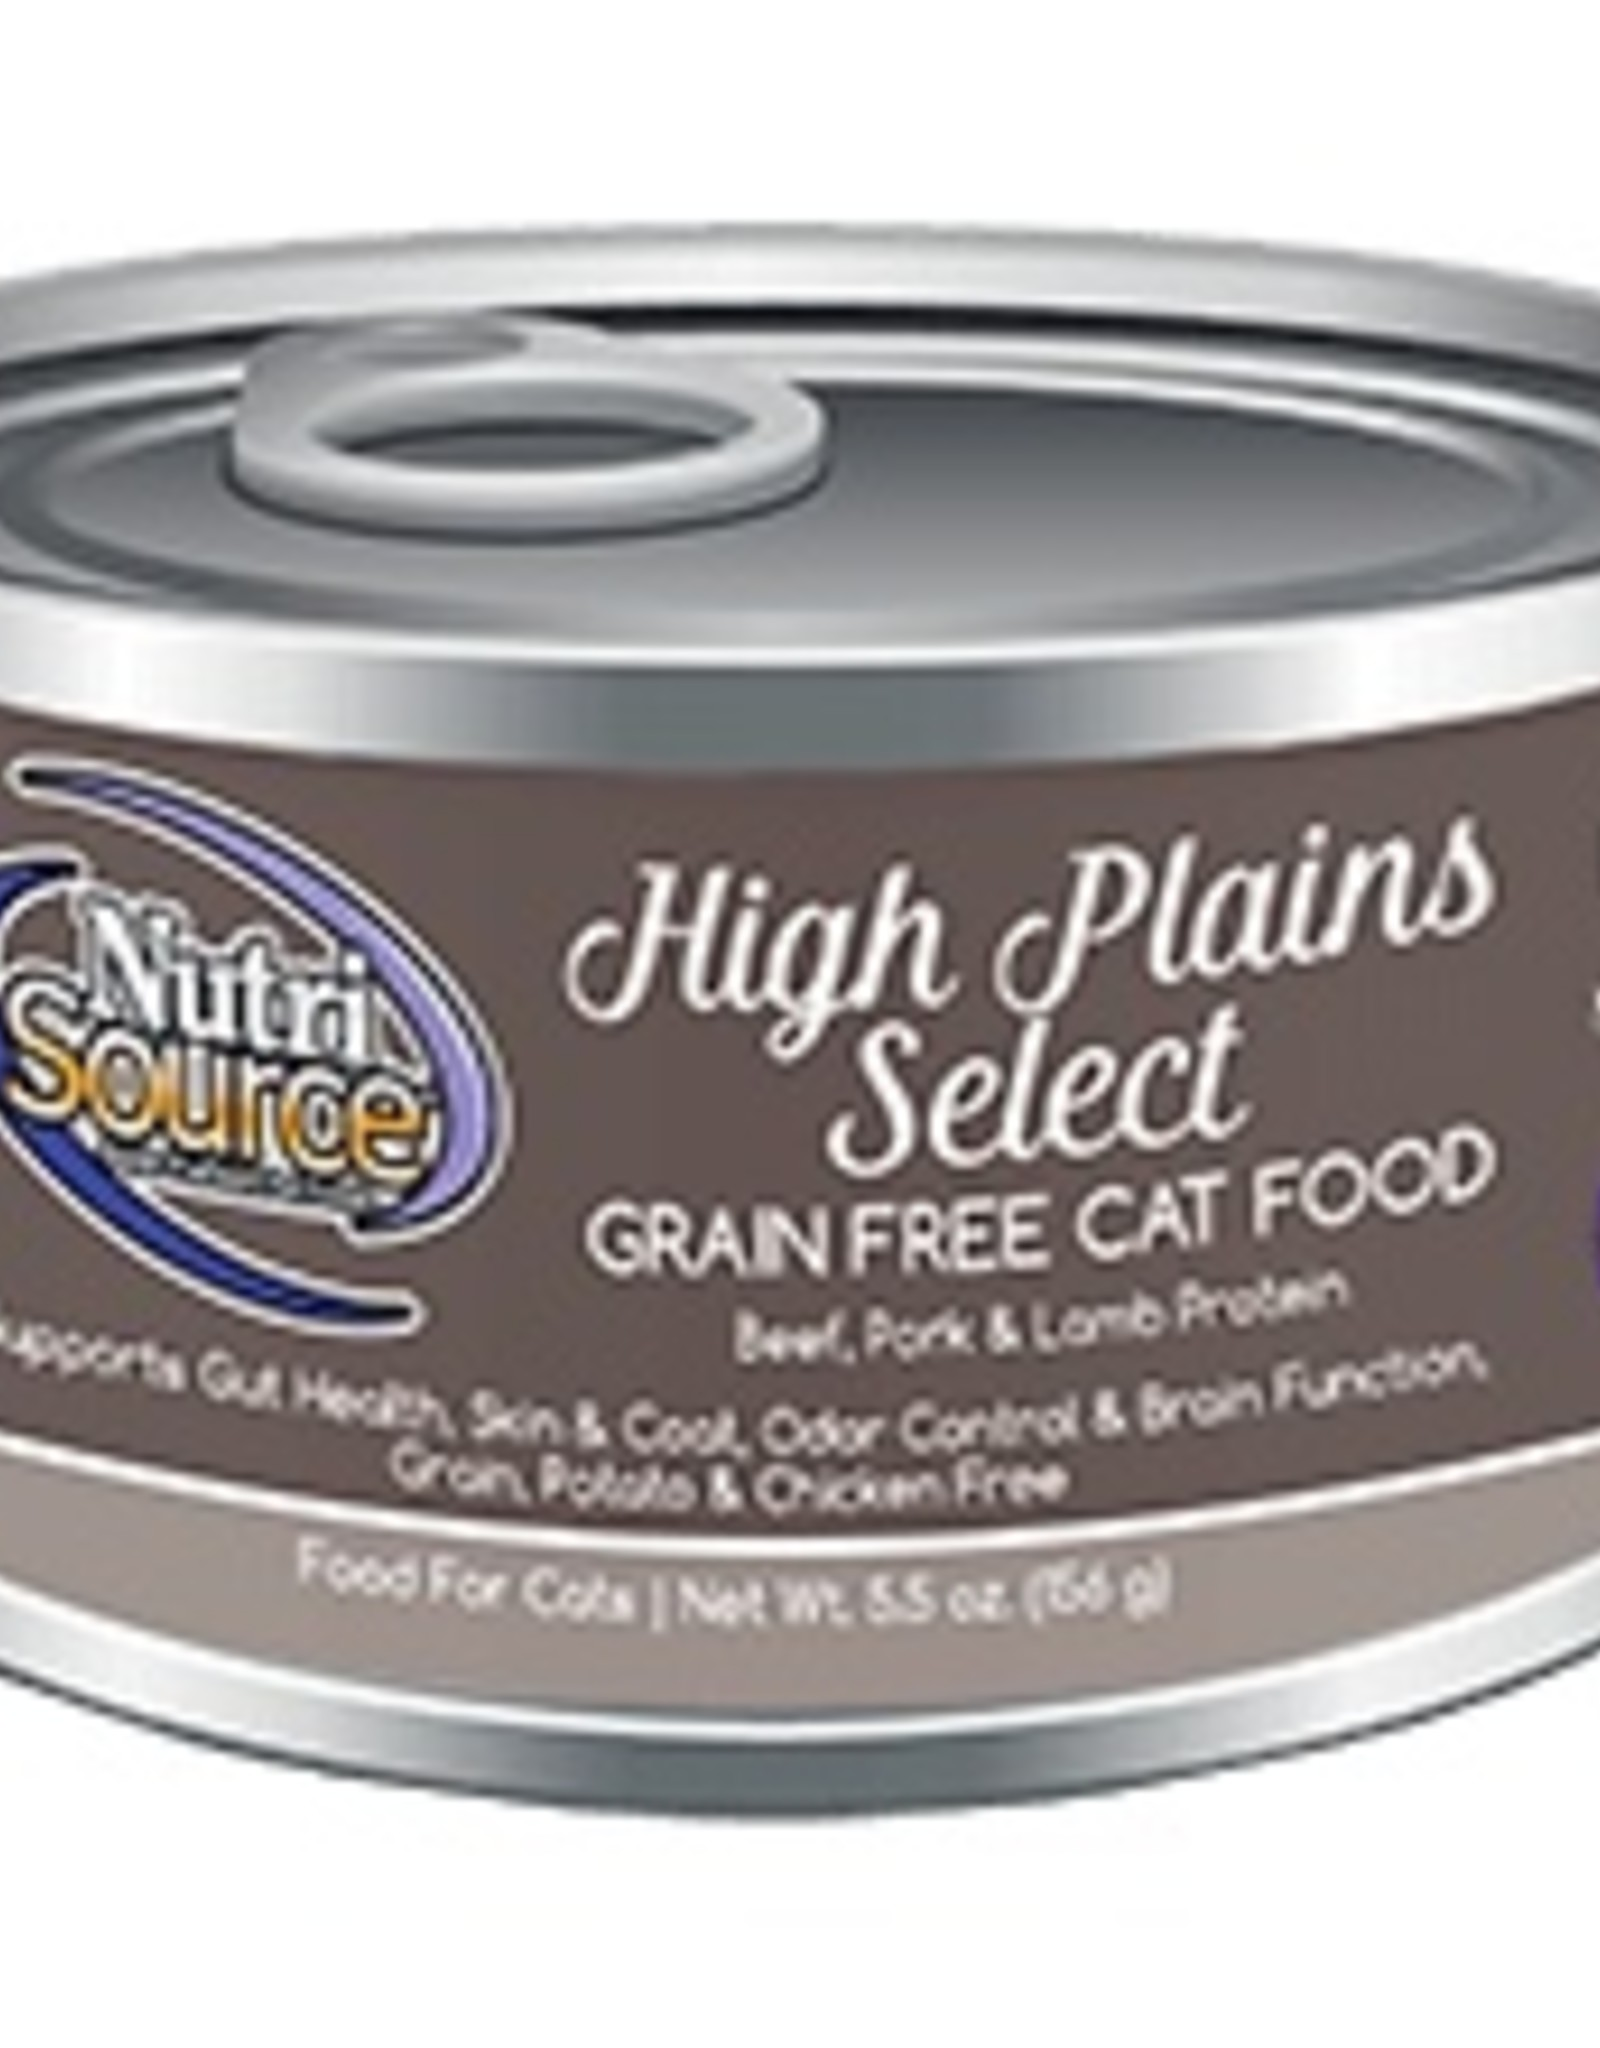 NutriSource NutriSource High Plains Select Cat 5.5oz